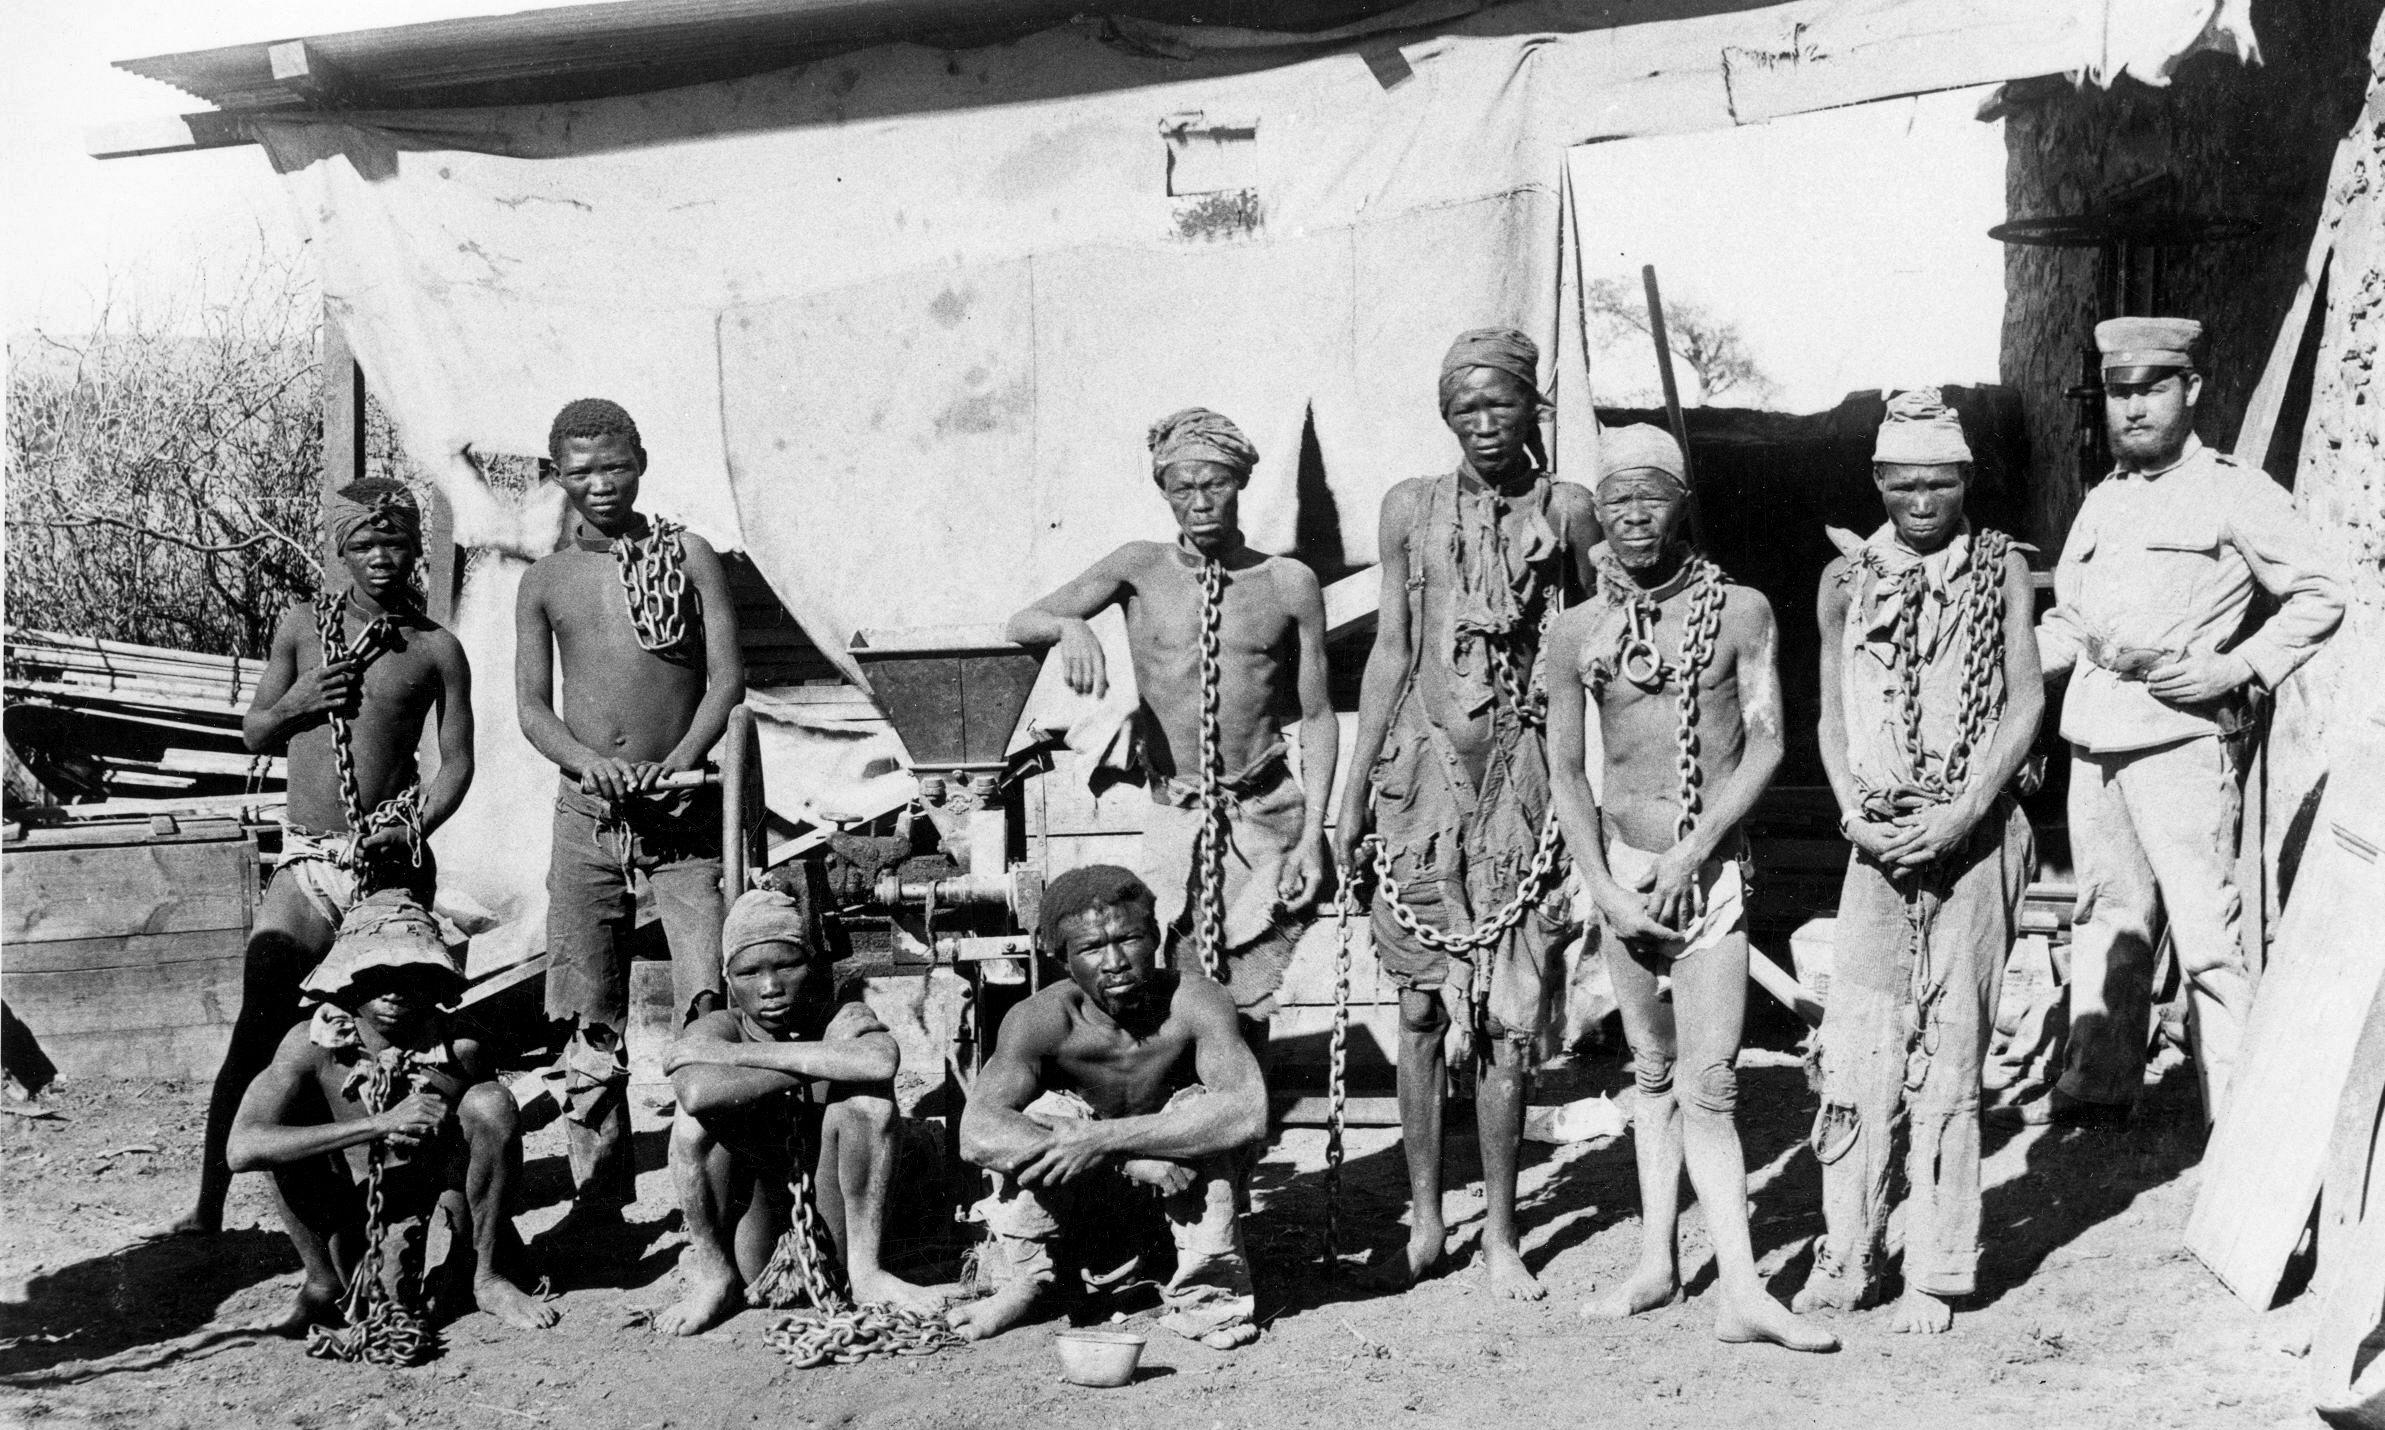 Prisoners from the Herero and Nama tribes during the 1904-1908 war against Germany